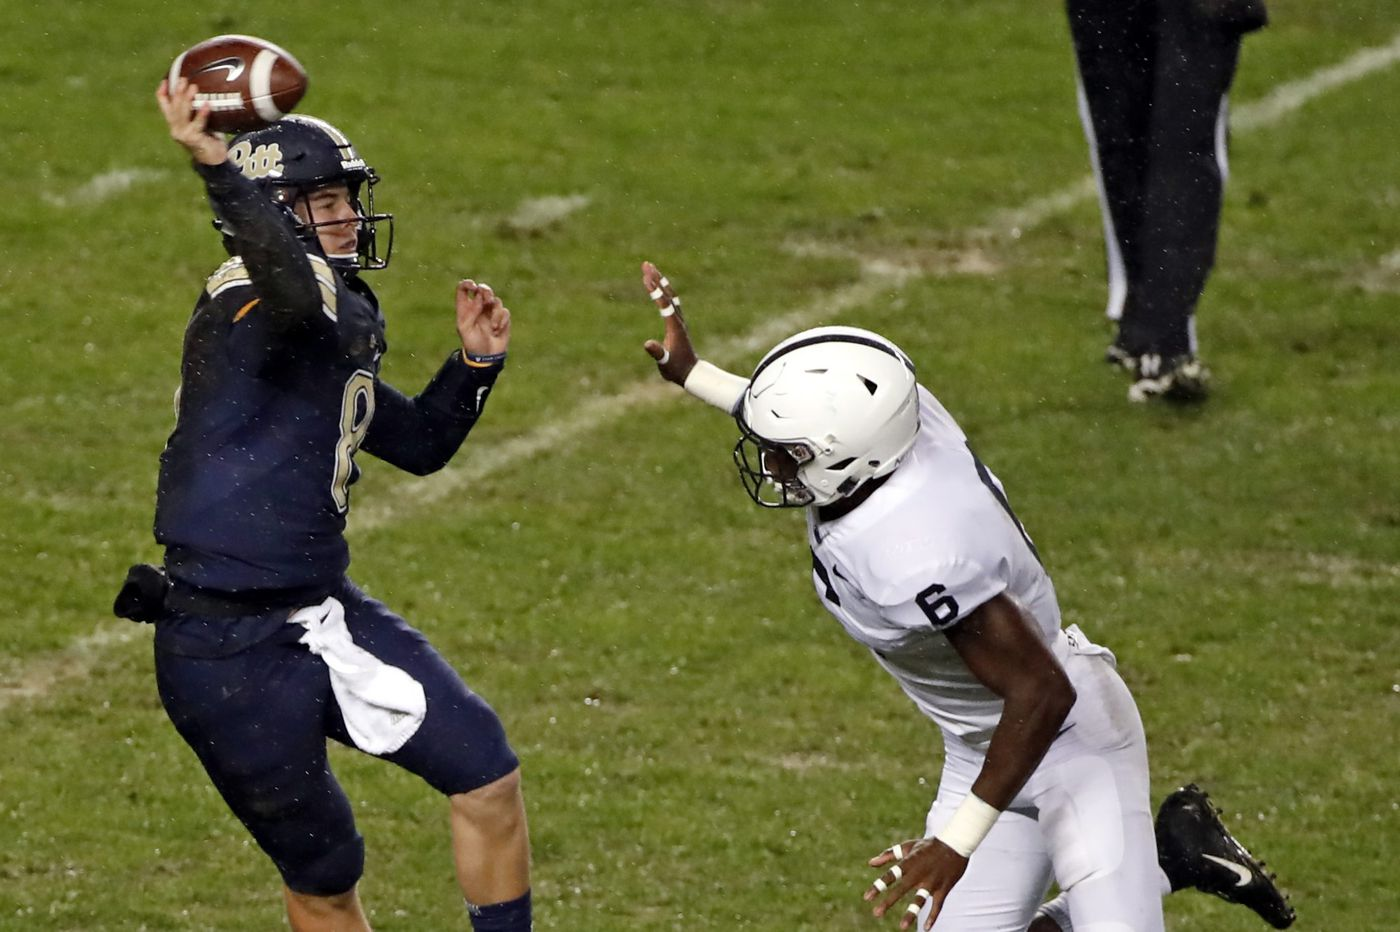 Penn State's young linebackers showing improvement